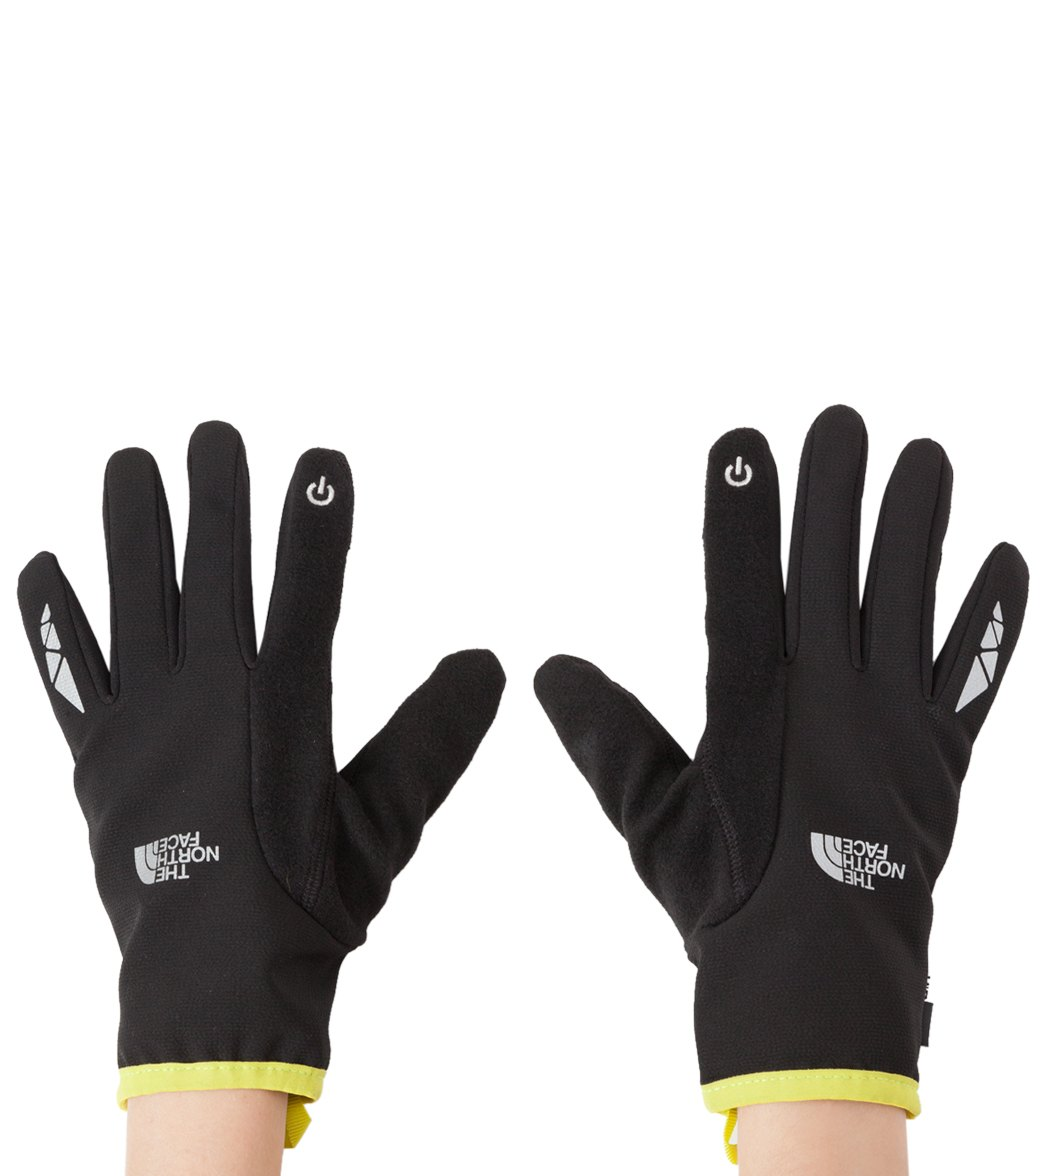 ae1e8f371 The North Face Runners 2 Etip Glove